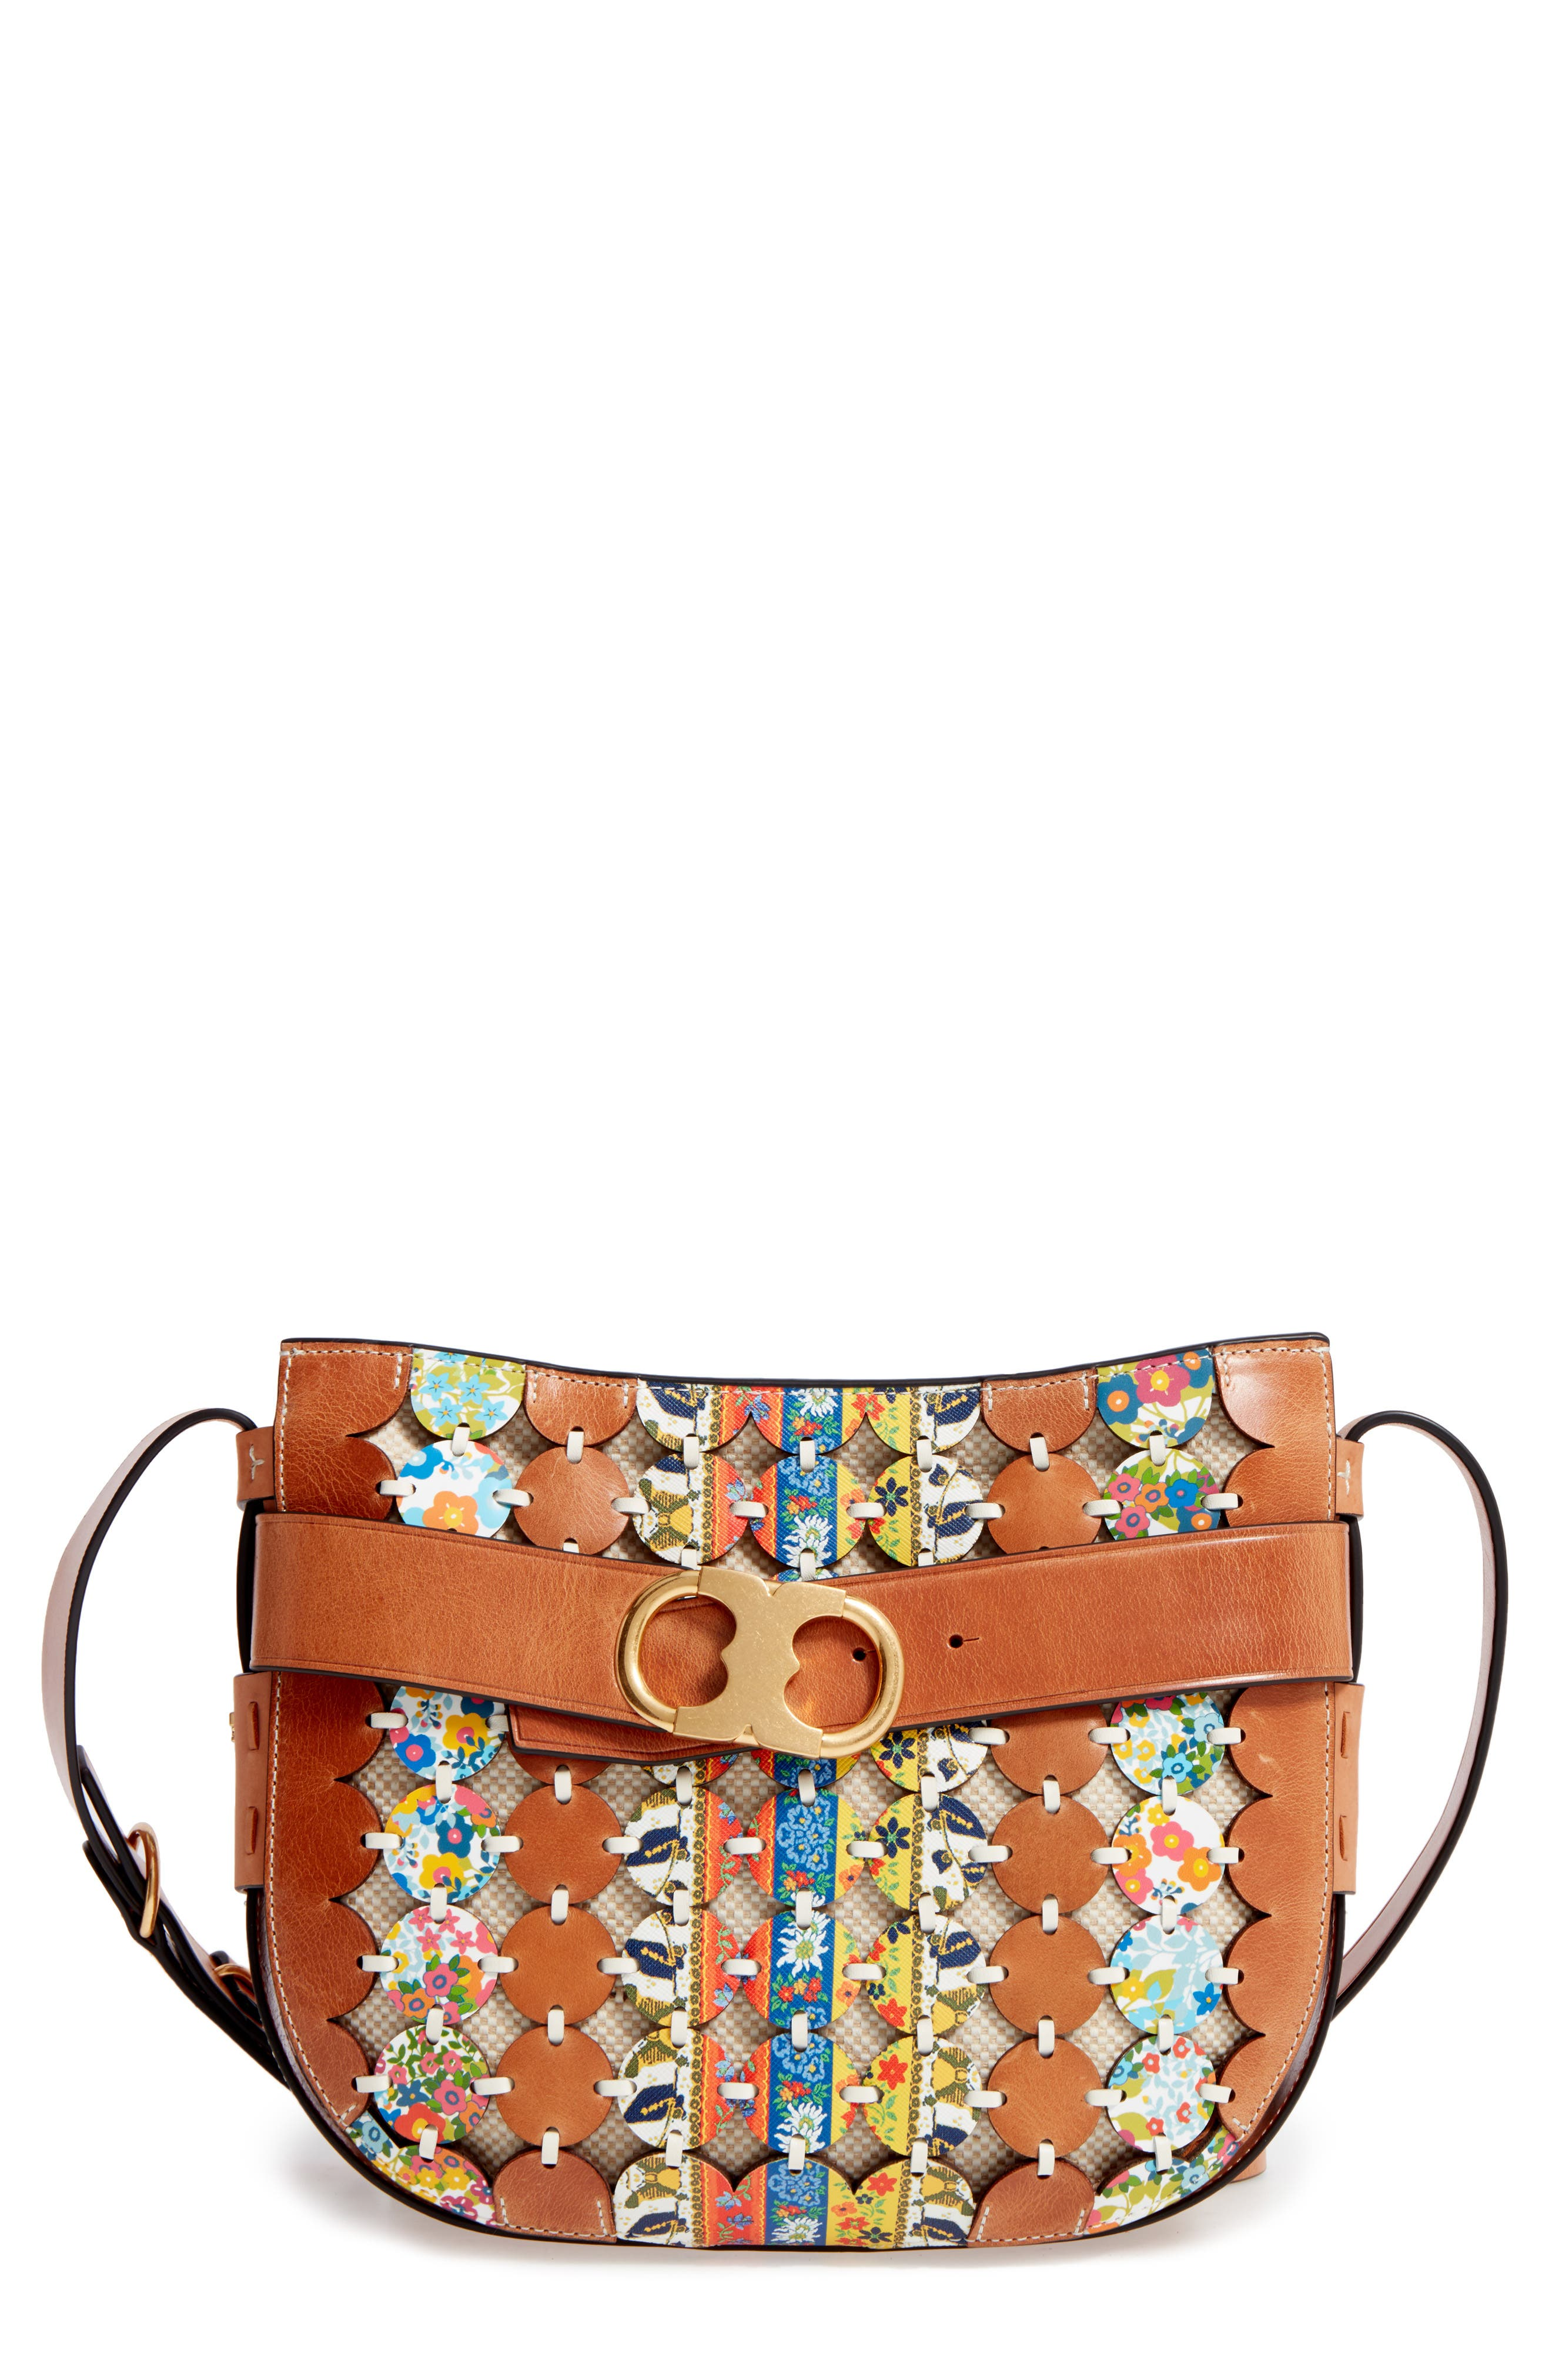 Alternate Image 1 Selected - Tory Burch Gemini Link Belted Leather Crossbody Bag